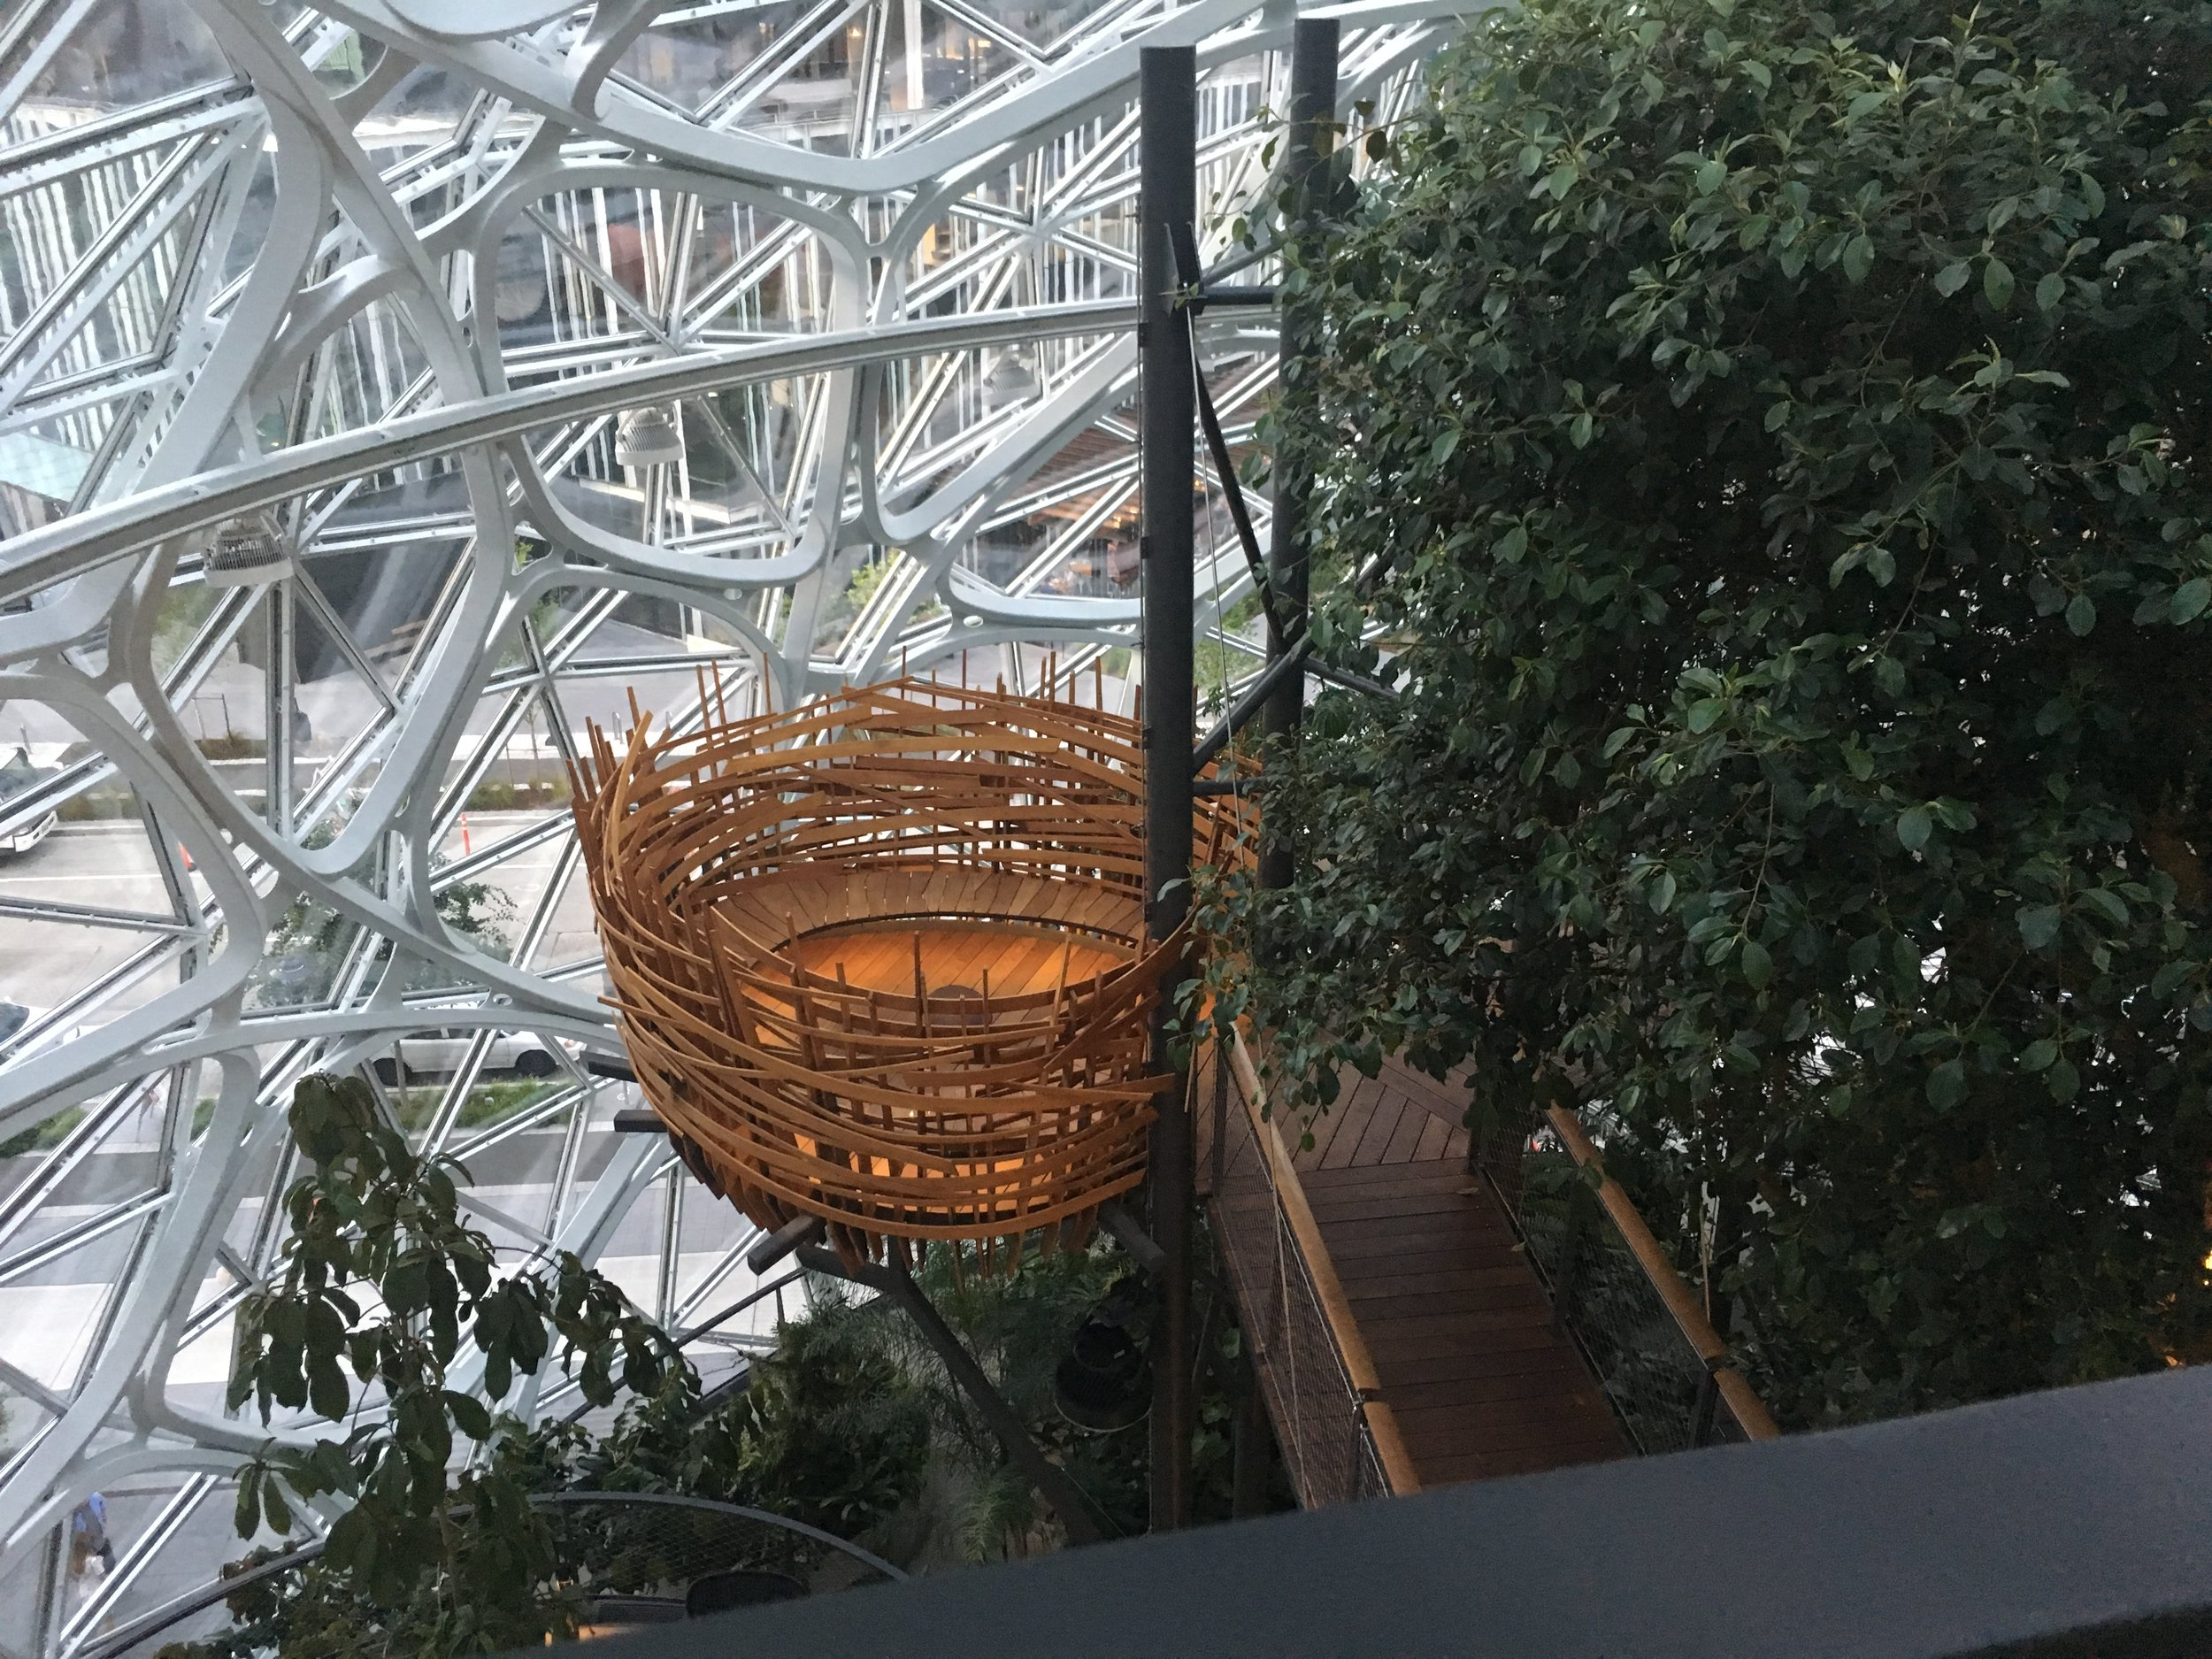 BIRD'S NEST AMAZON SPHERES.jpg